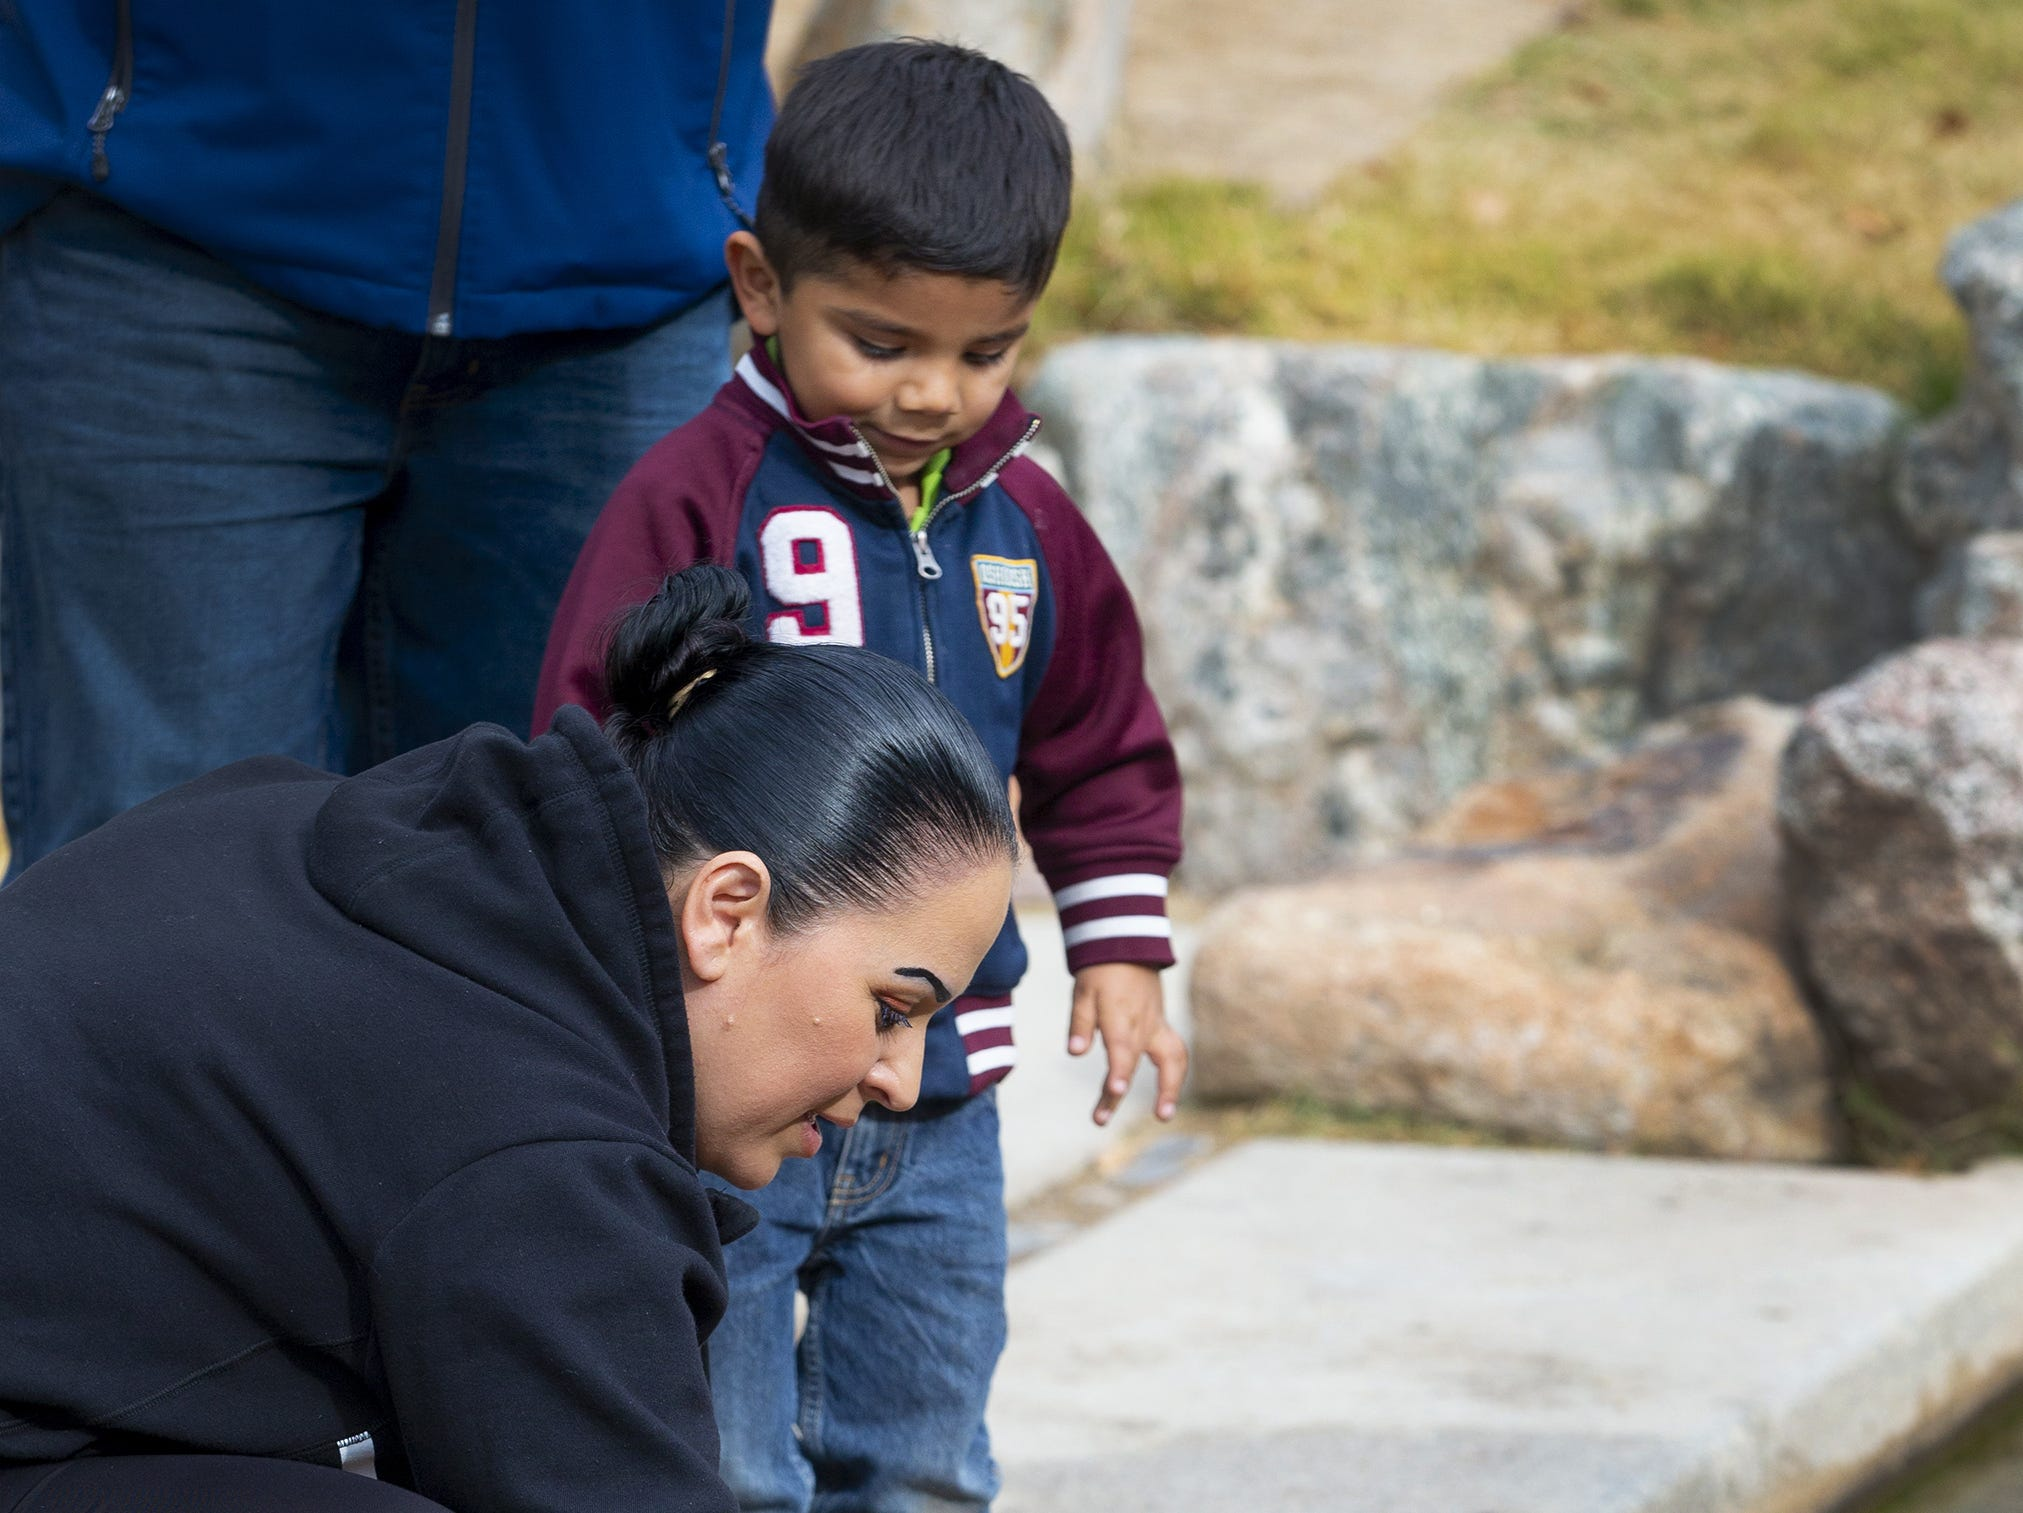 Angelica Munoz and her son, Carlos Jr., 3, of Buckeye, feed the koi fish at the Japanese Friendship Garden located in the heart of downtown Phoenix on January 10, 2019.